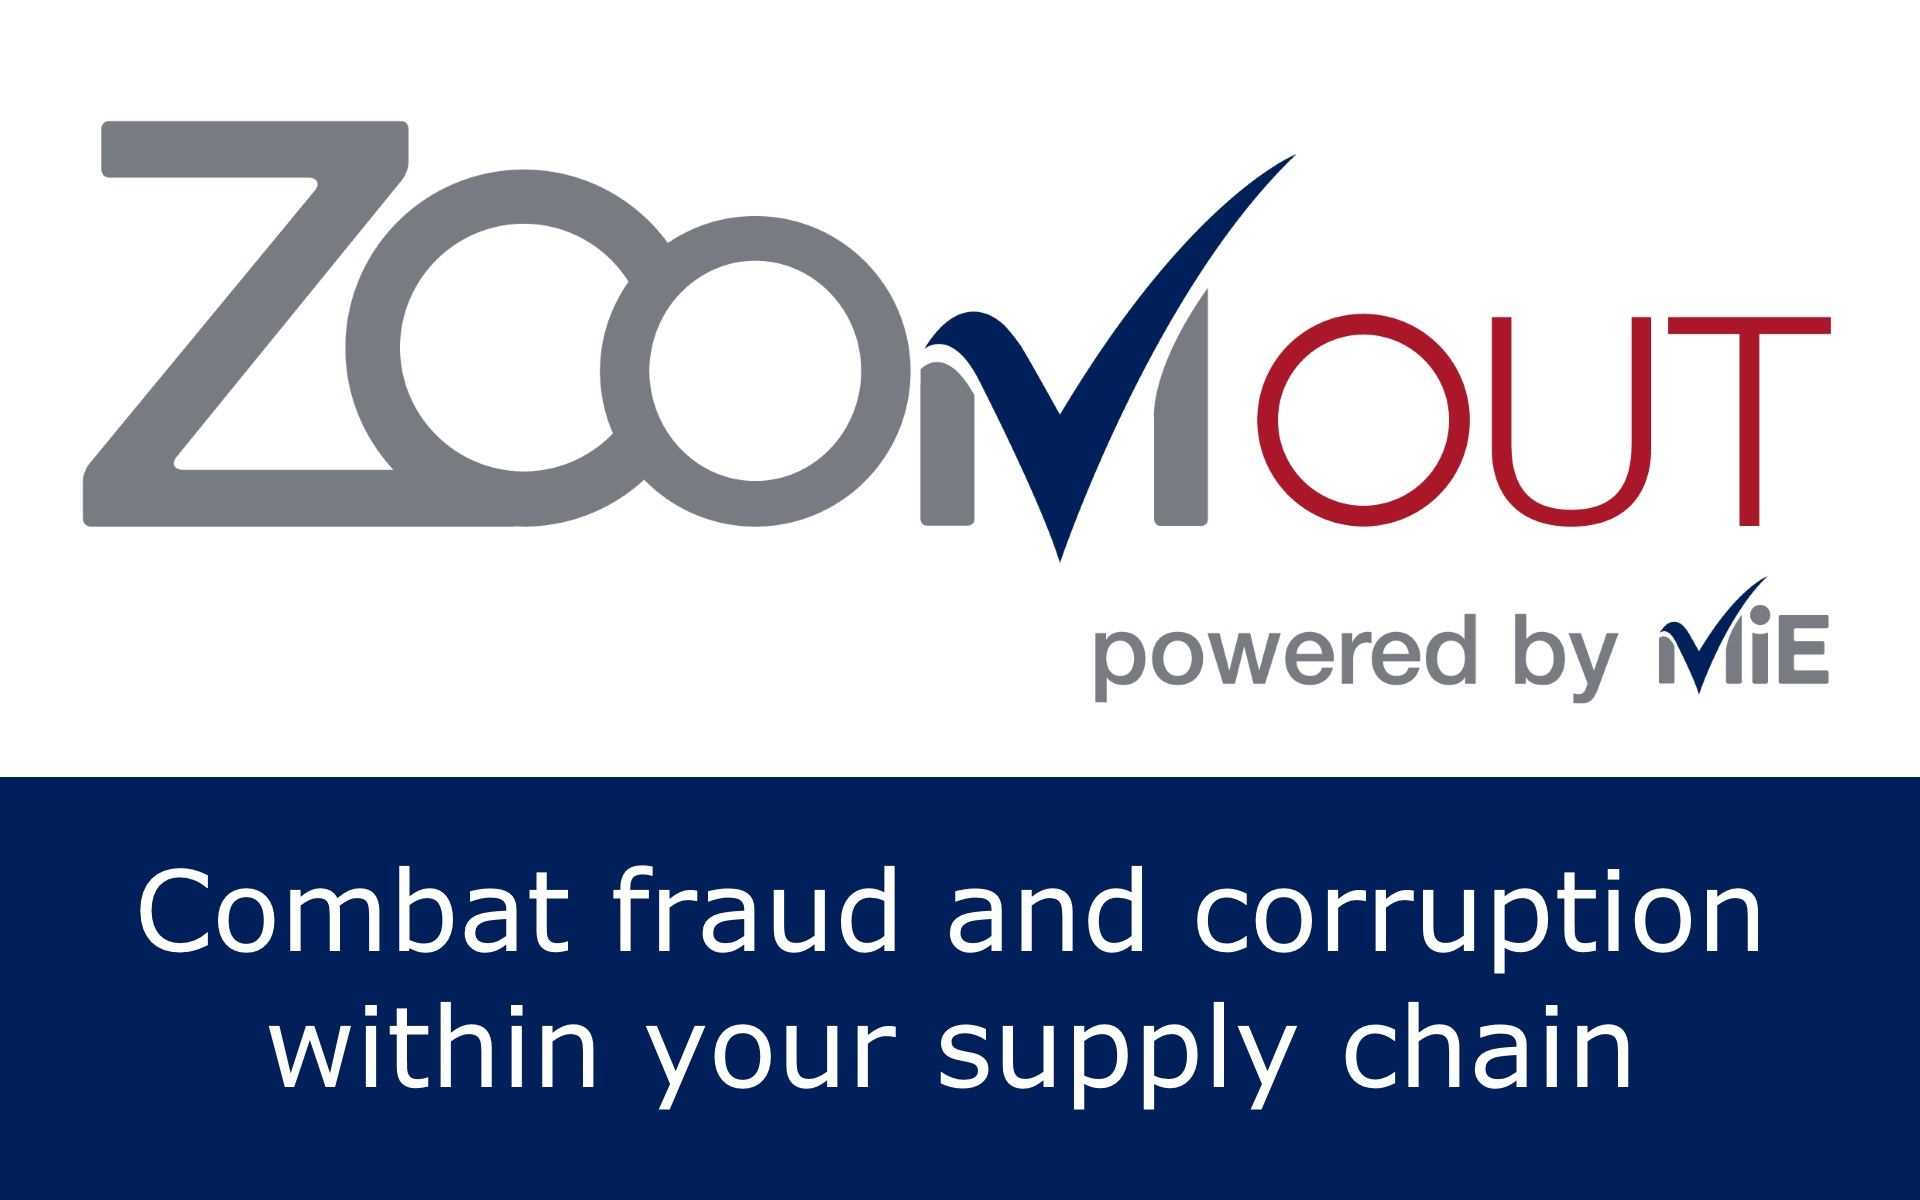 fraud and corruption Fraud and anti-corruption the afp is proactively seeking to address global fraud and corruption issues through bolstering efforts to prevent, detect and investigate these multi-dimensional crimes through enhanced intelligence, inter-agency liaison, and investigator training.